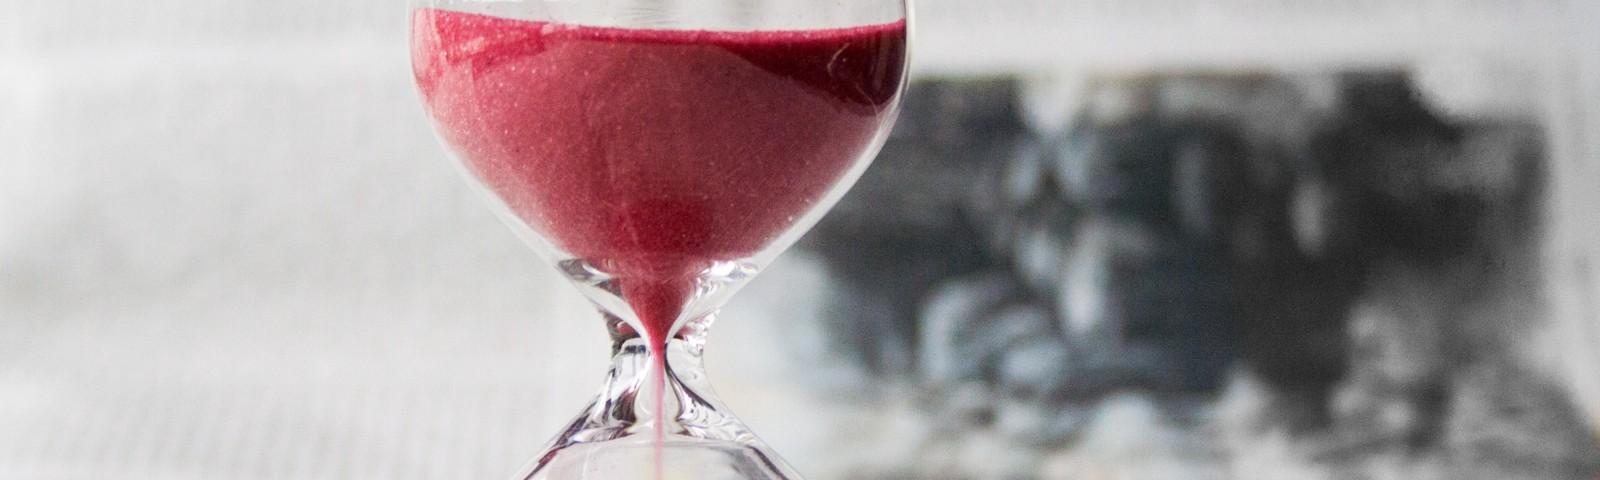 hourglass with sand running